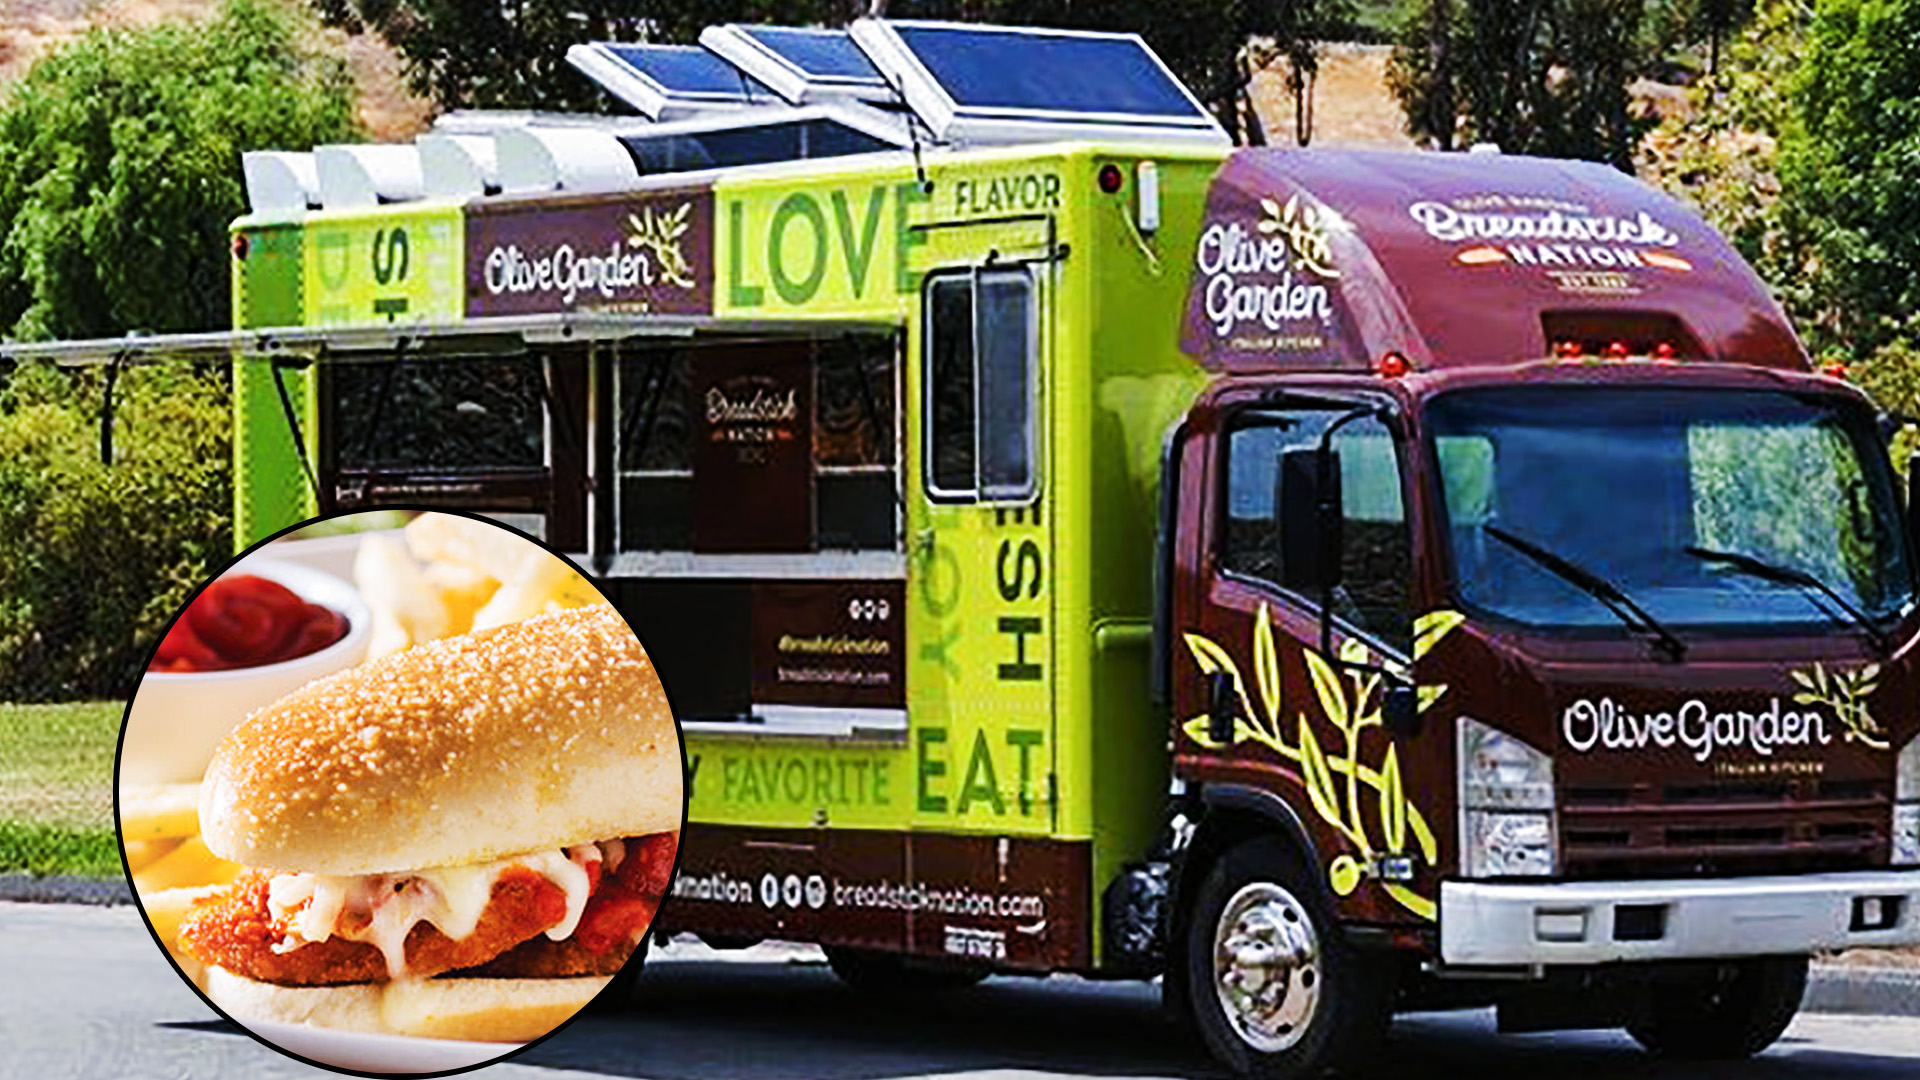 #BreadstickNation Is Coming! Olive Garden Food Trucks Touring the Country